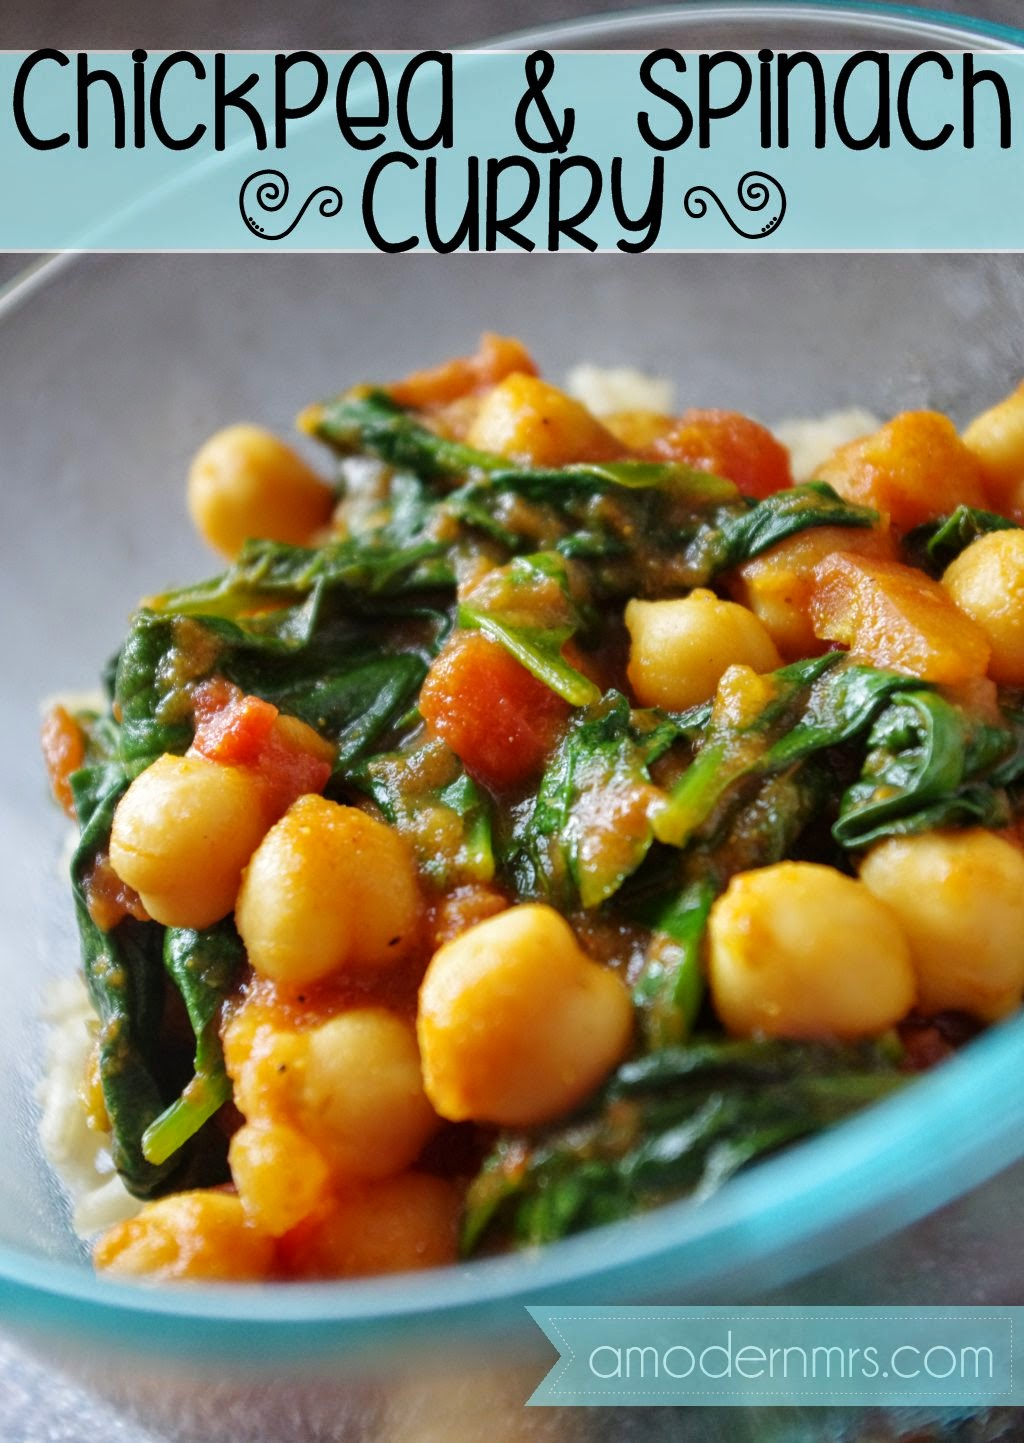 Chickpea and Spinach Curry Recipe — a Modern Mrs.